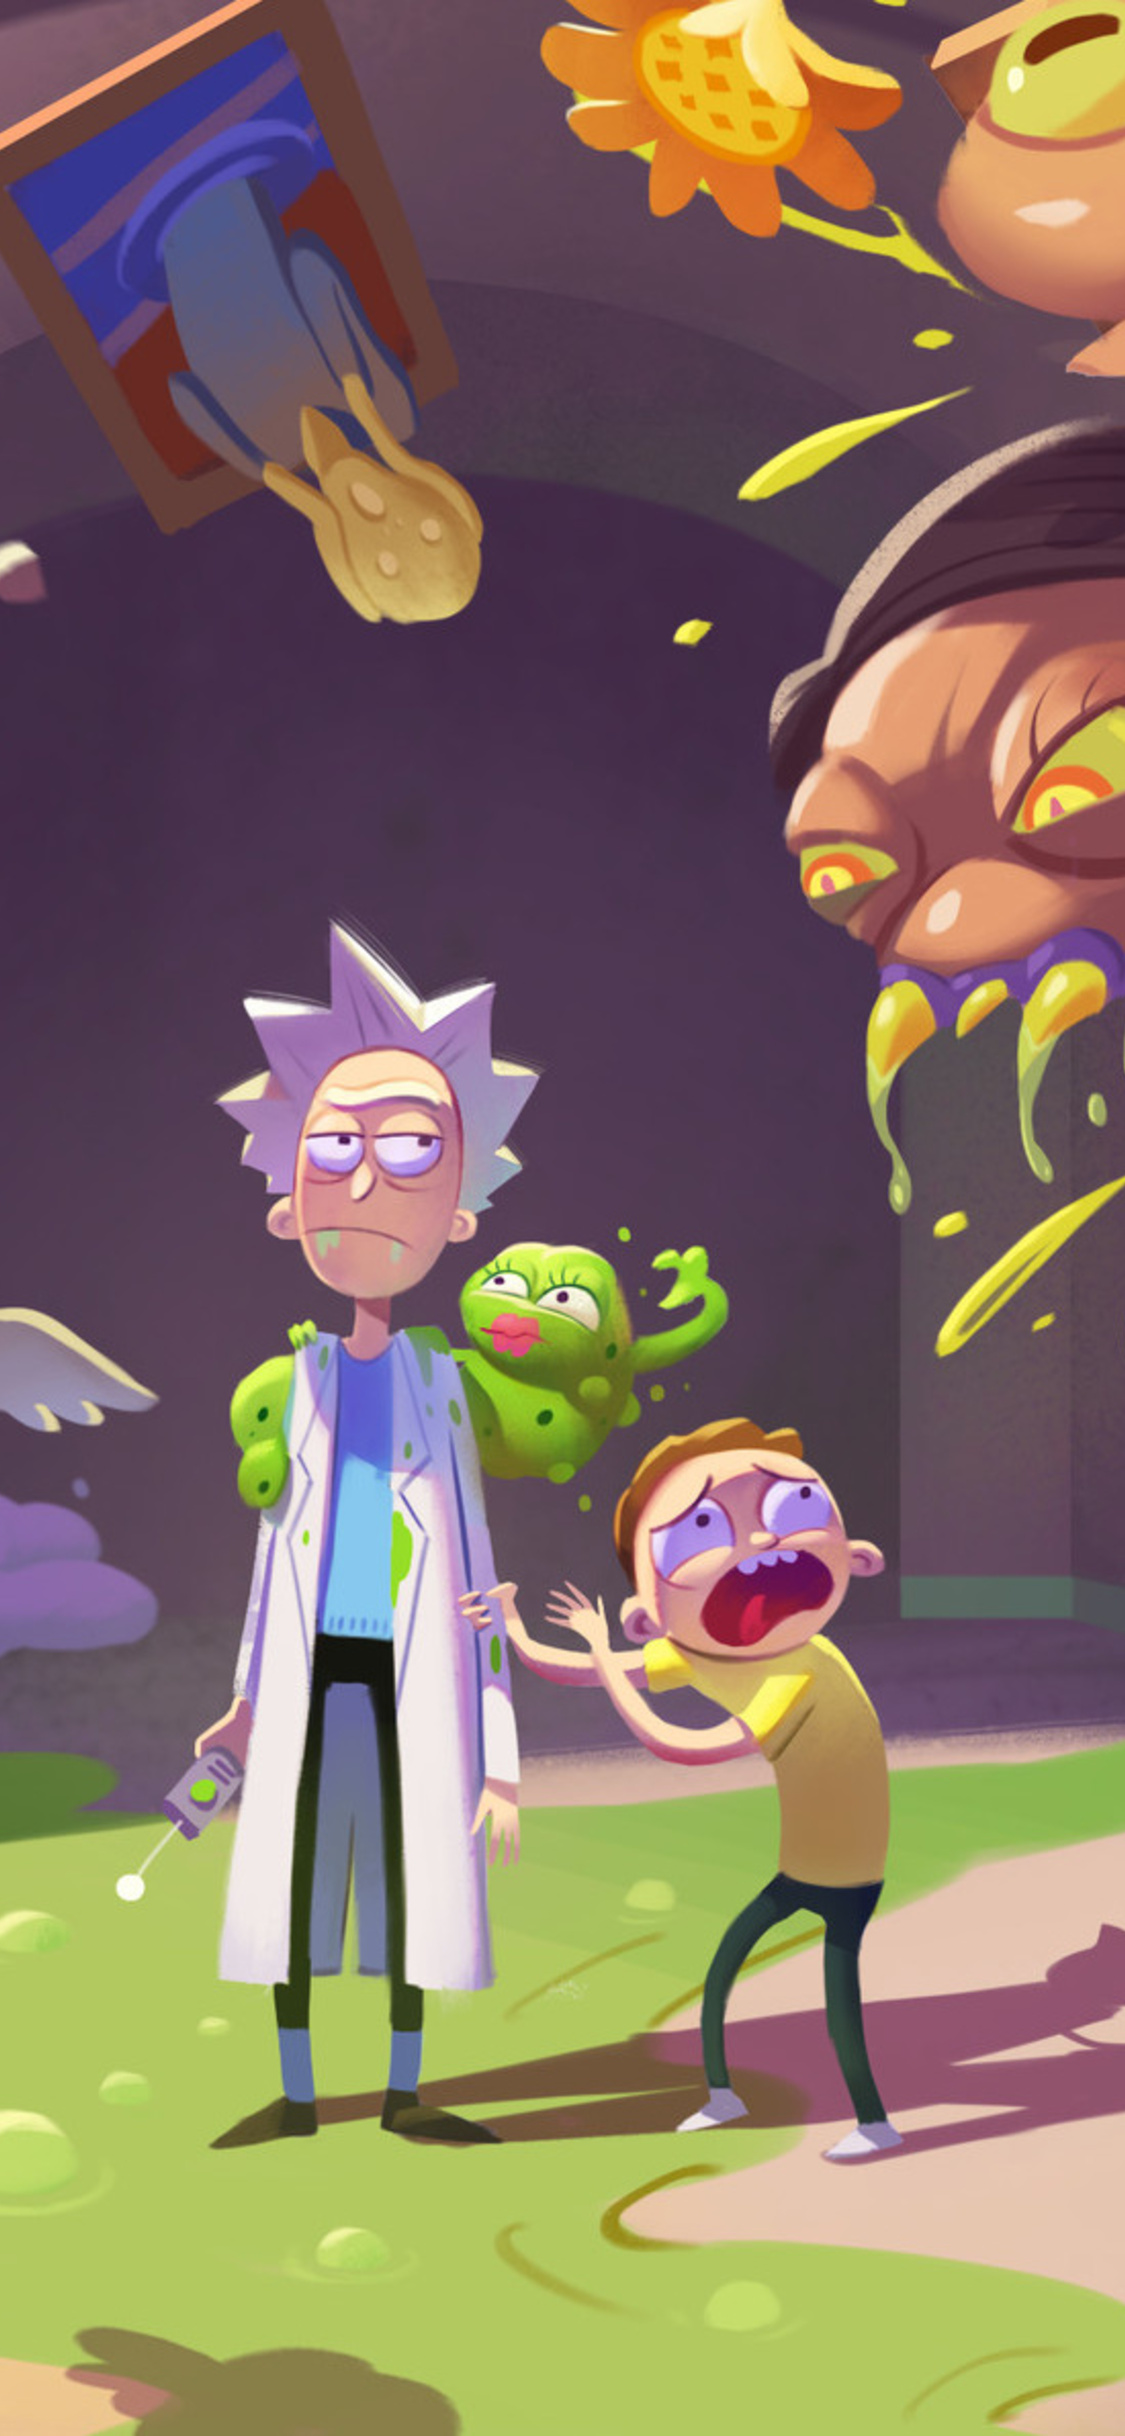 1125x2436 Rick And Morty Hd Art Iphone Xs Iphone 10 Iphone X Hd 4k